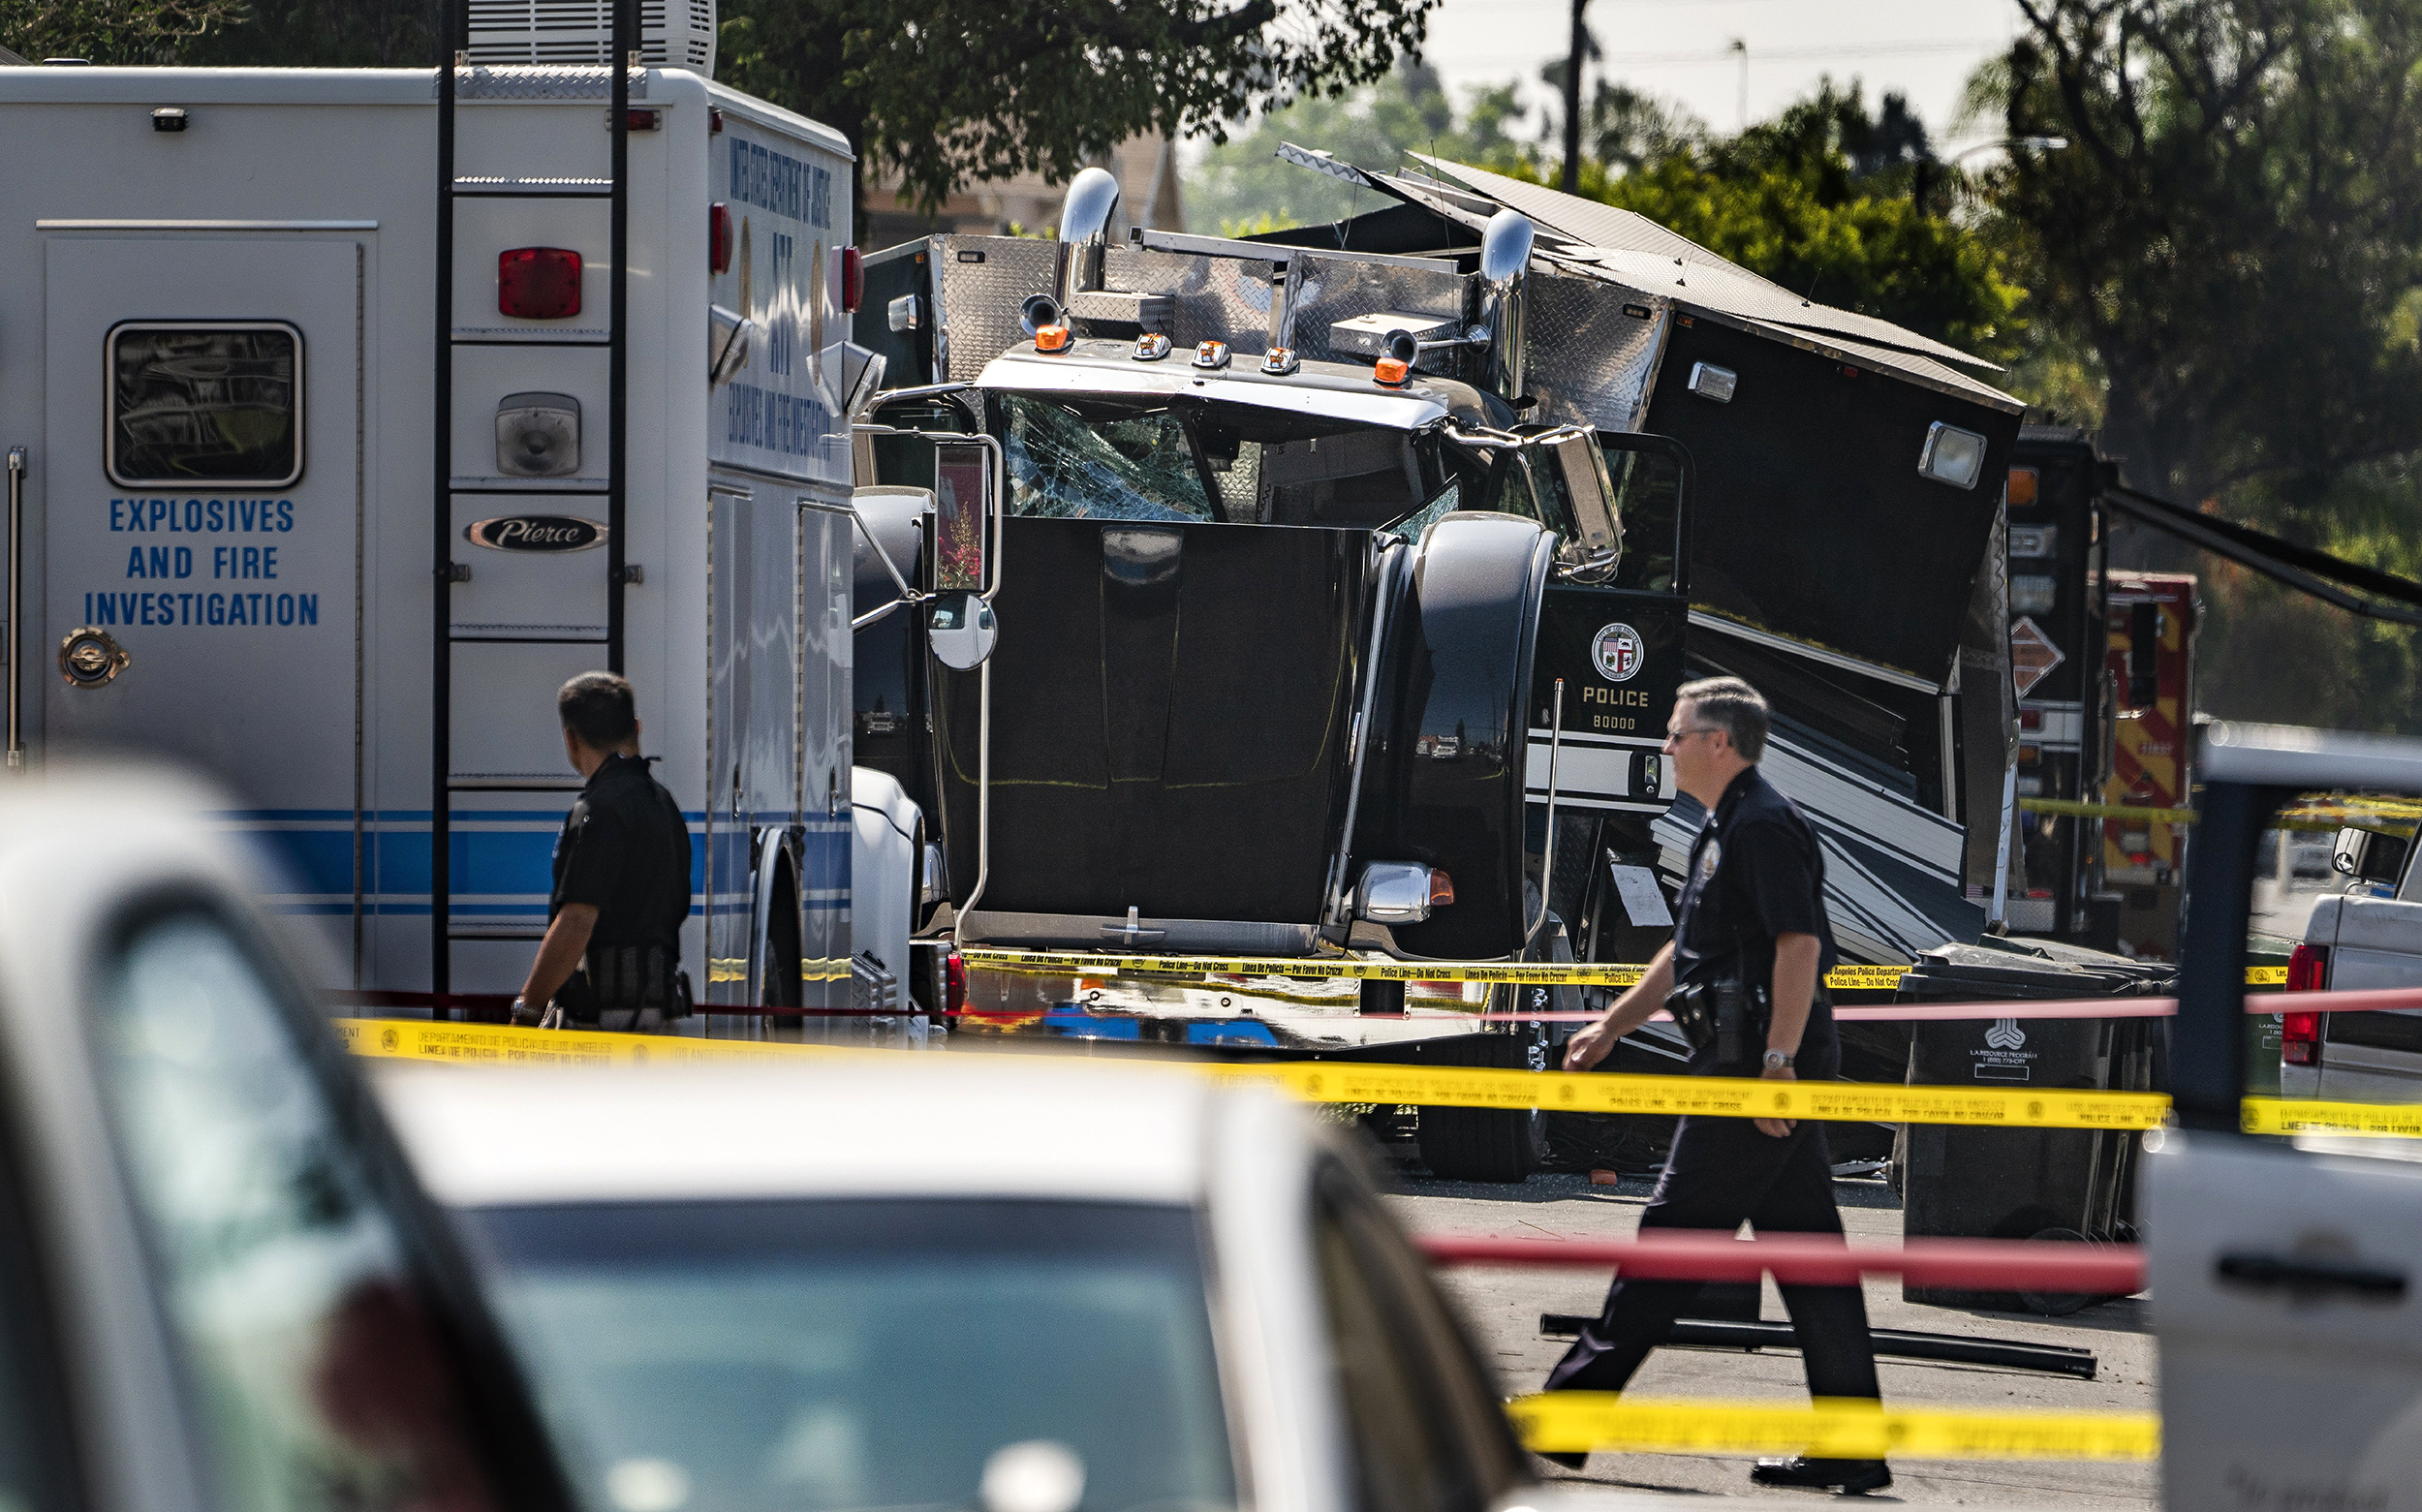 L.A. officers who caused giant blast with fireworks likely made 'significant miscalculation'